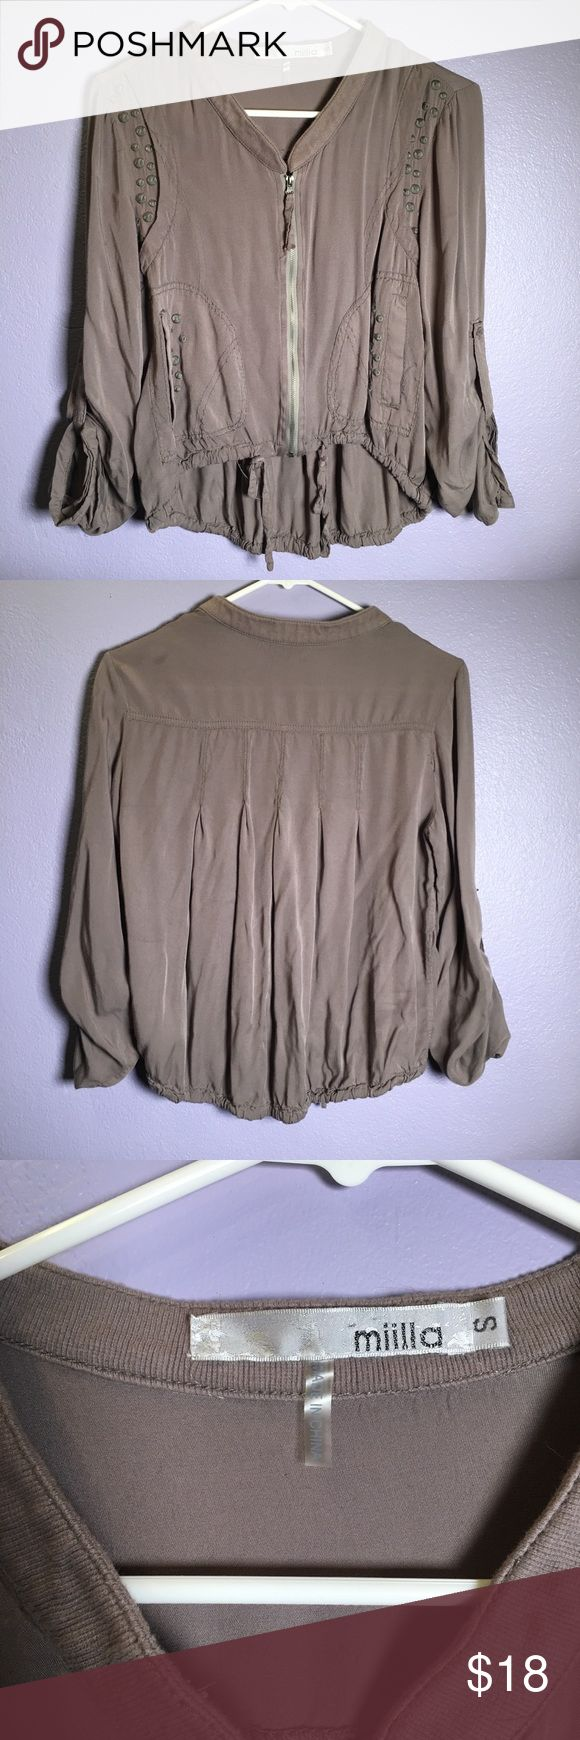 Grey zip up top with pockets Cute flowy grey zip up top with pockets. Super cute I just never wear it. Tops Blouses